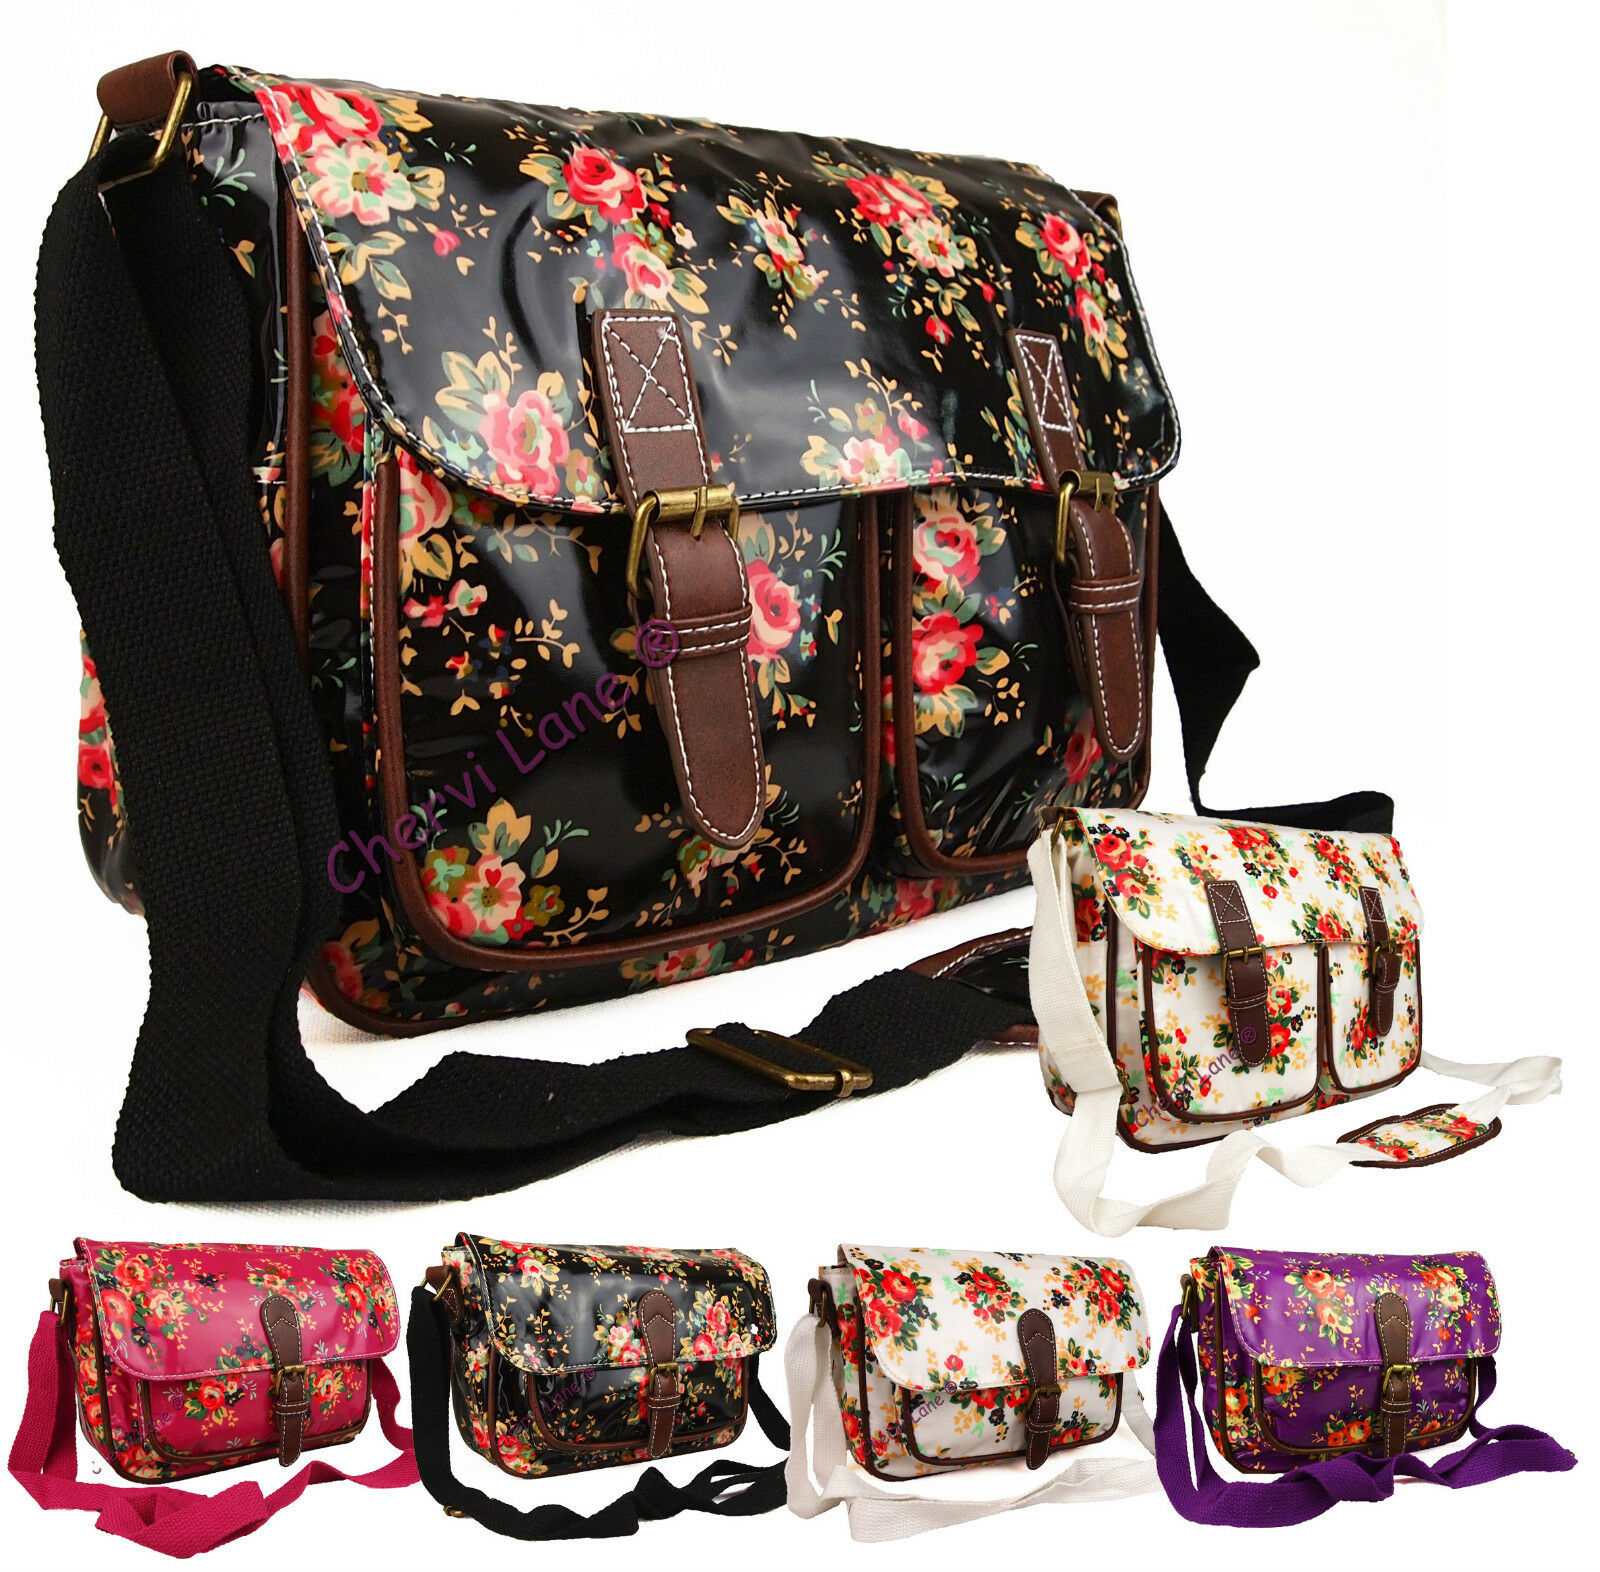 Find and save ideas about School bags for girls on Pinterest. | See more ideas about Back bag for girl, Middle school supplies and Bag to school. Abshoo Canvas Dot Backpack Cute Lightweight Teen Girls Backpacks School Shoulder Bags Sky Blue -- More info could be found at the image url.